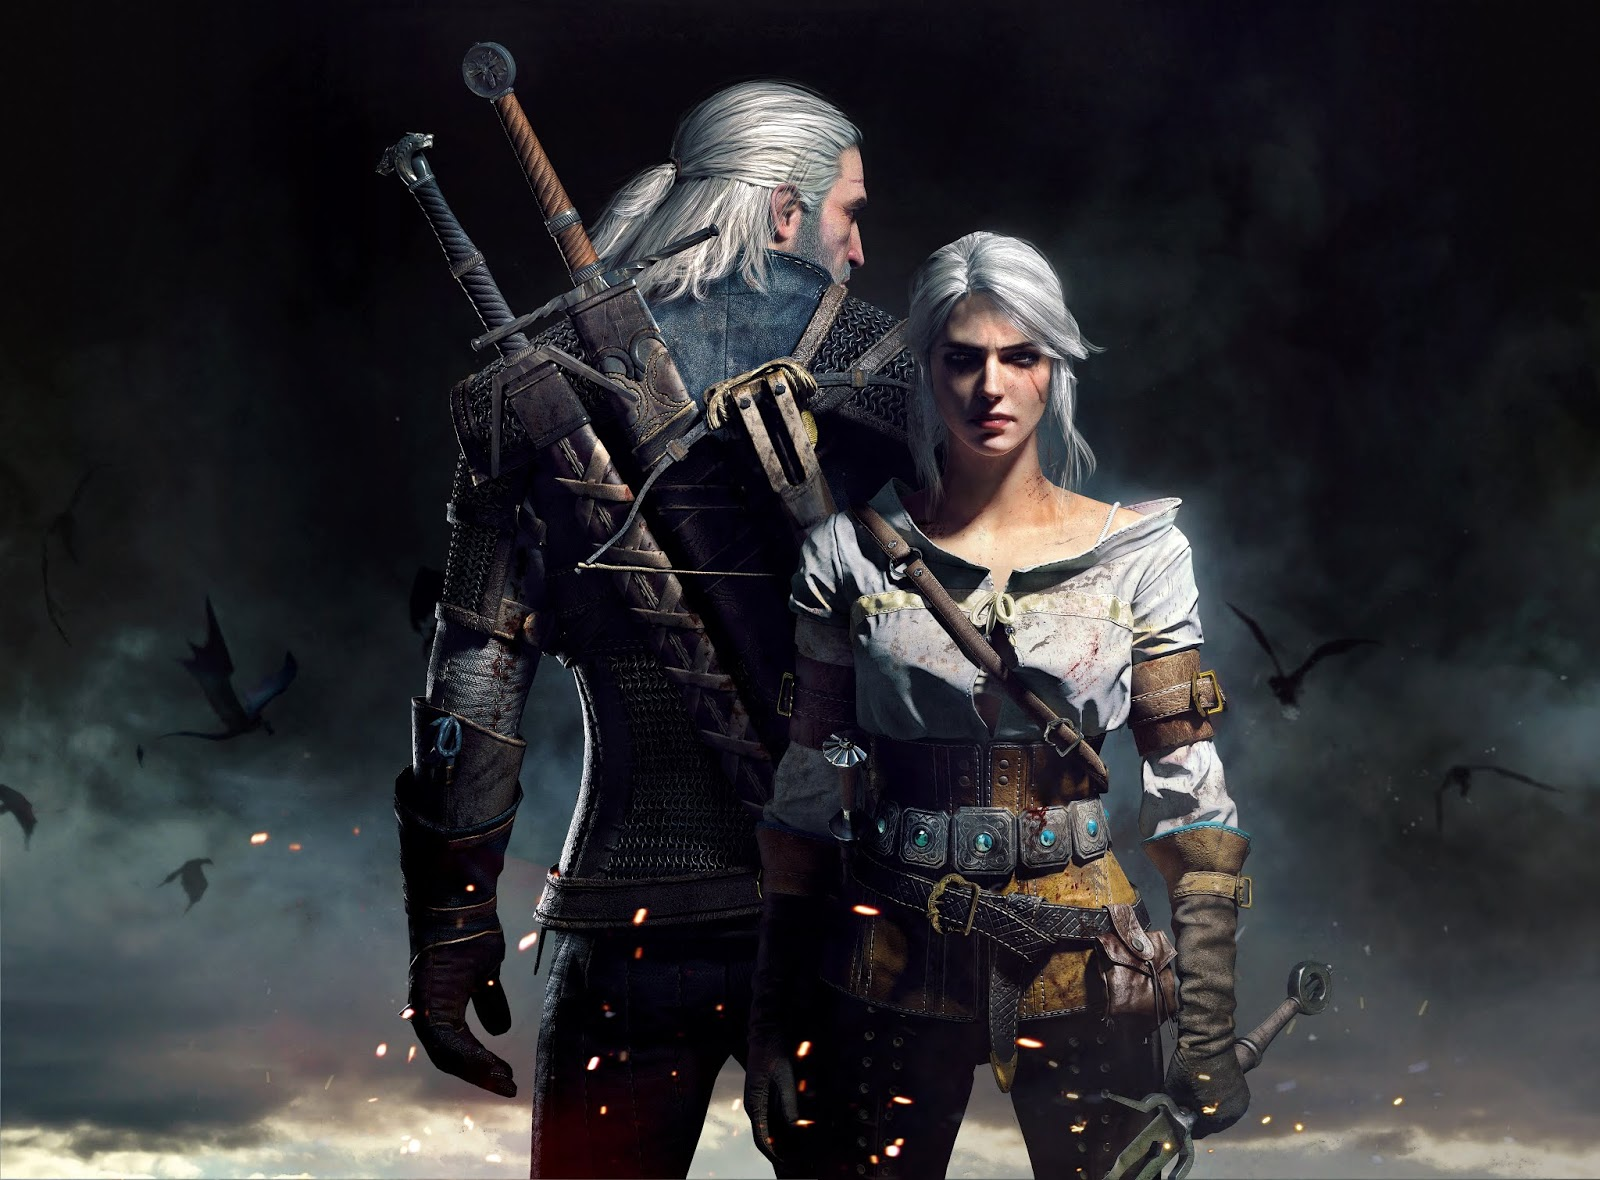 Witcher-wallpaper-best-quality-ultra-4k